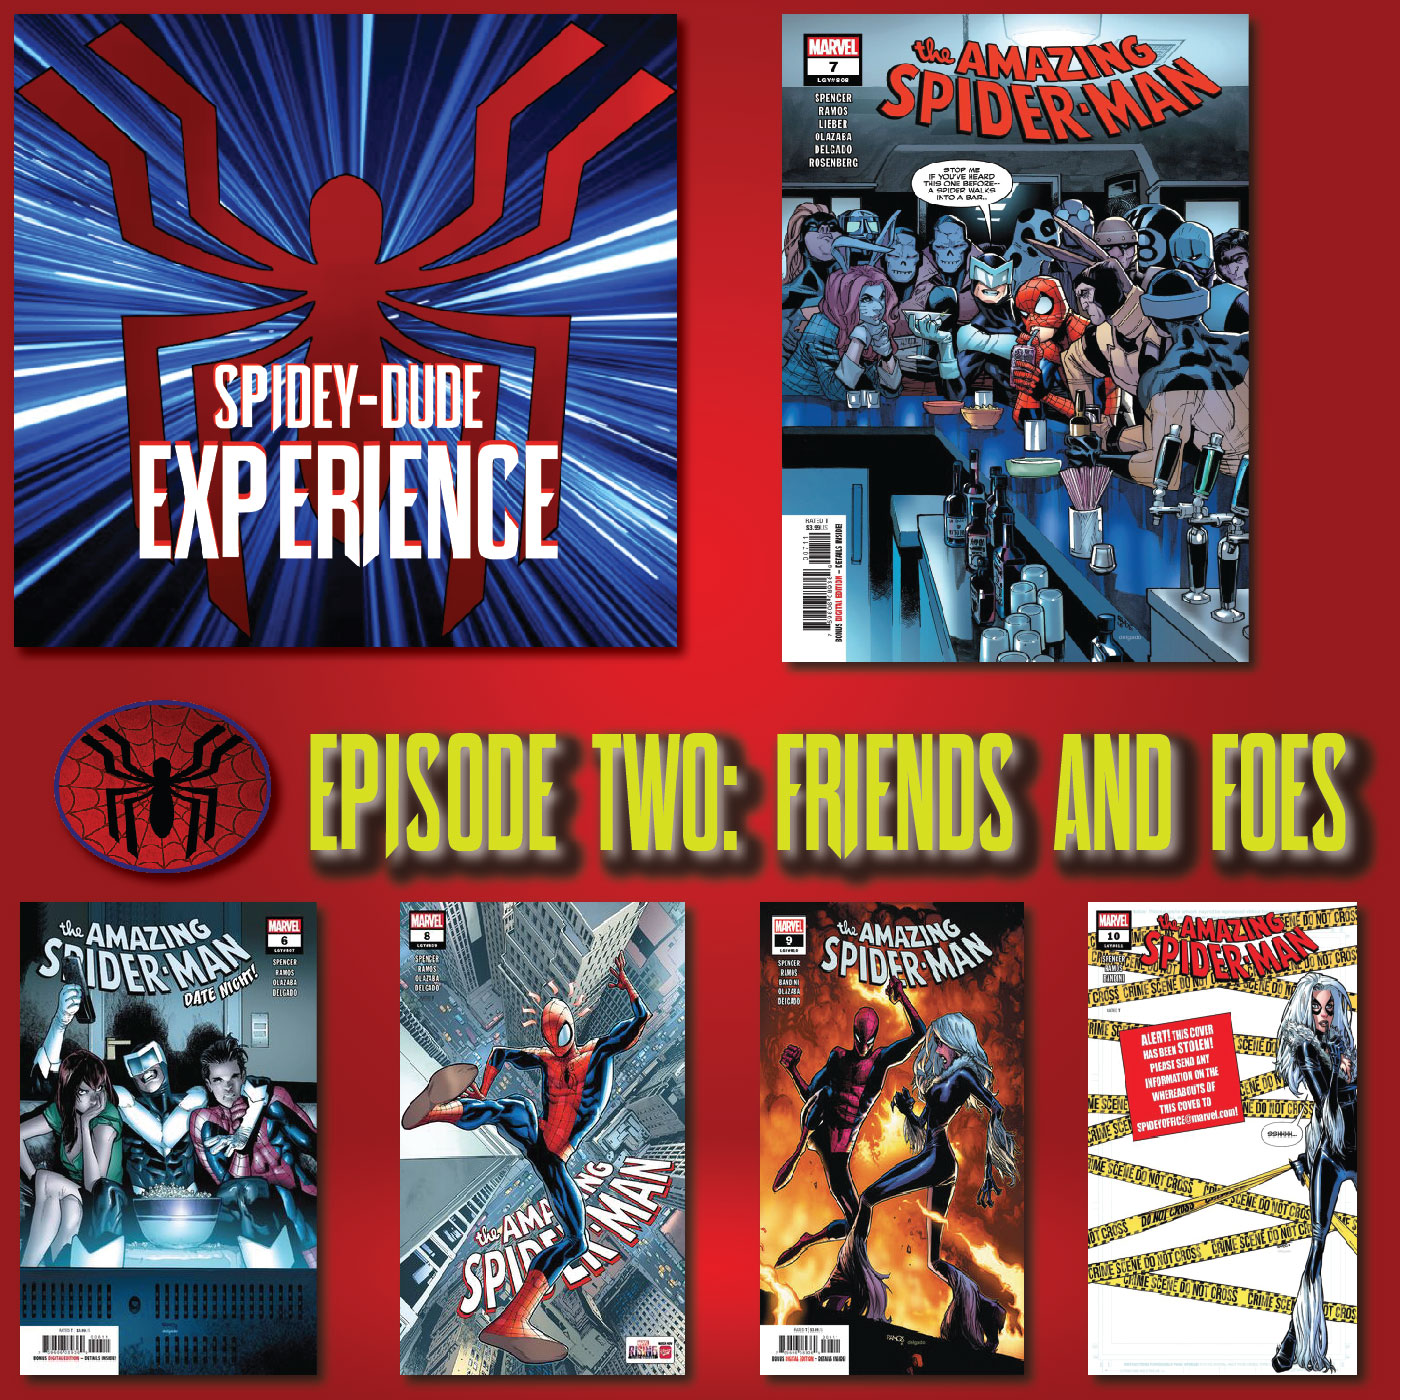 The SPIDEYDUDE EXPERIENCE EPISODE 2: Friends & Foes [Amazing Spider-Man 807-811]